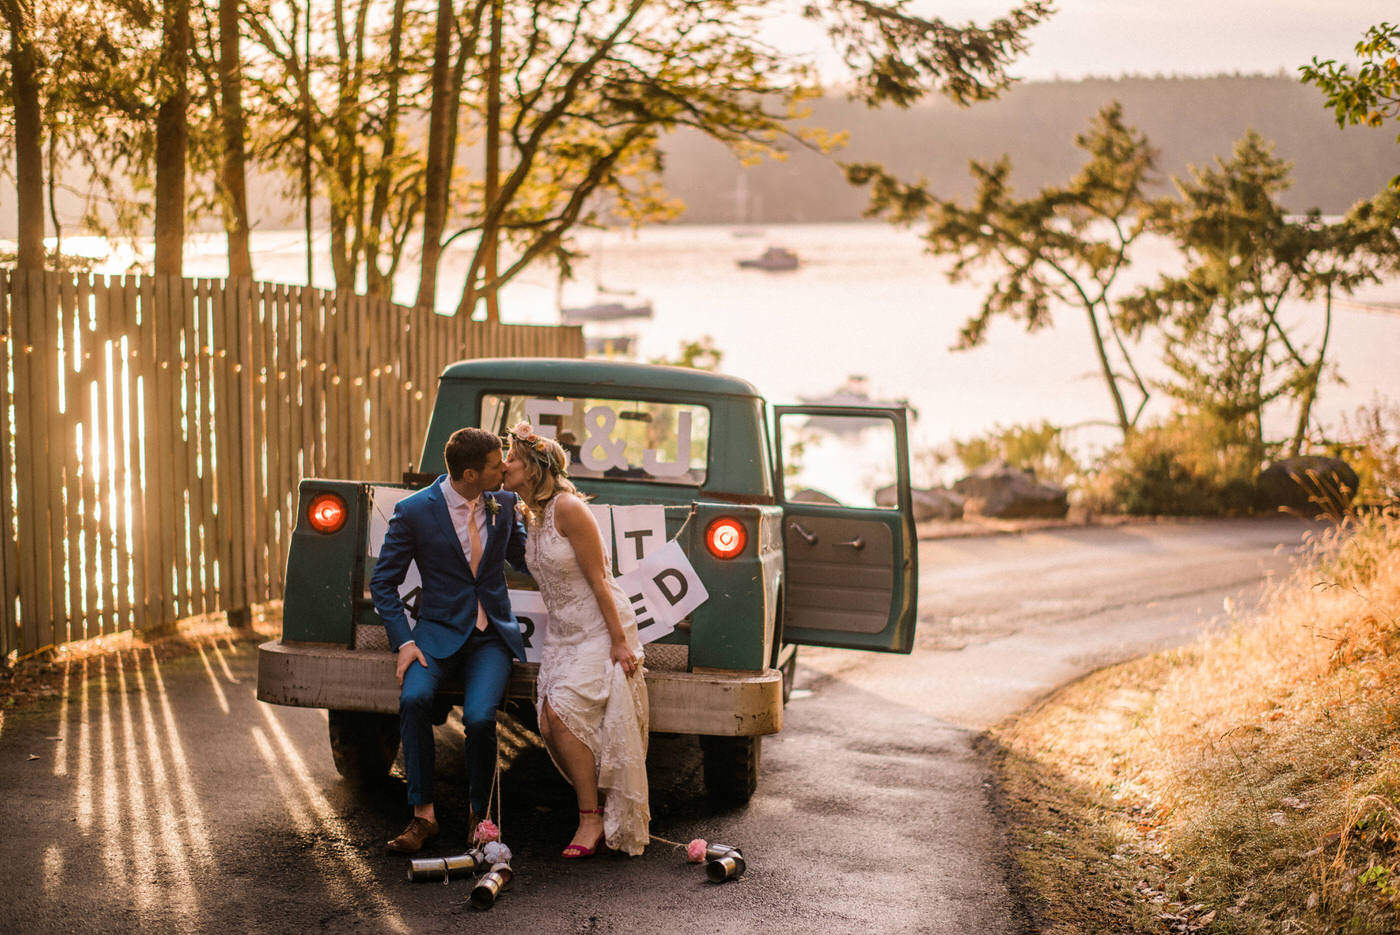 002-bride-and-groom-in-the-back-of-a-vintage-truck-on-lopez-island.jpg